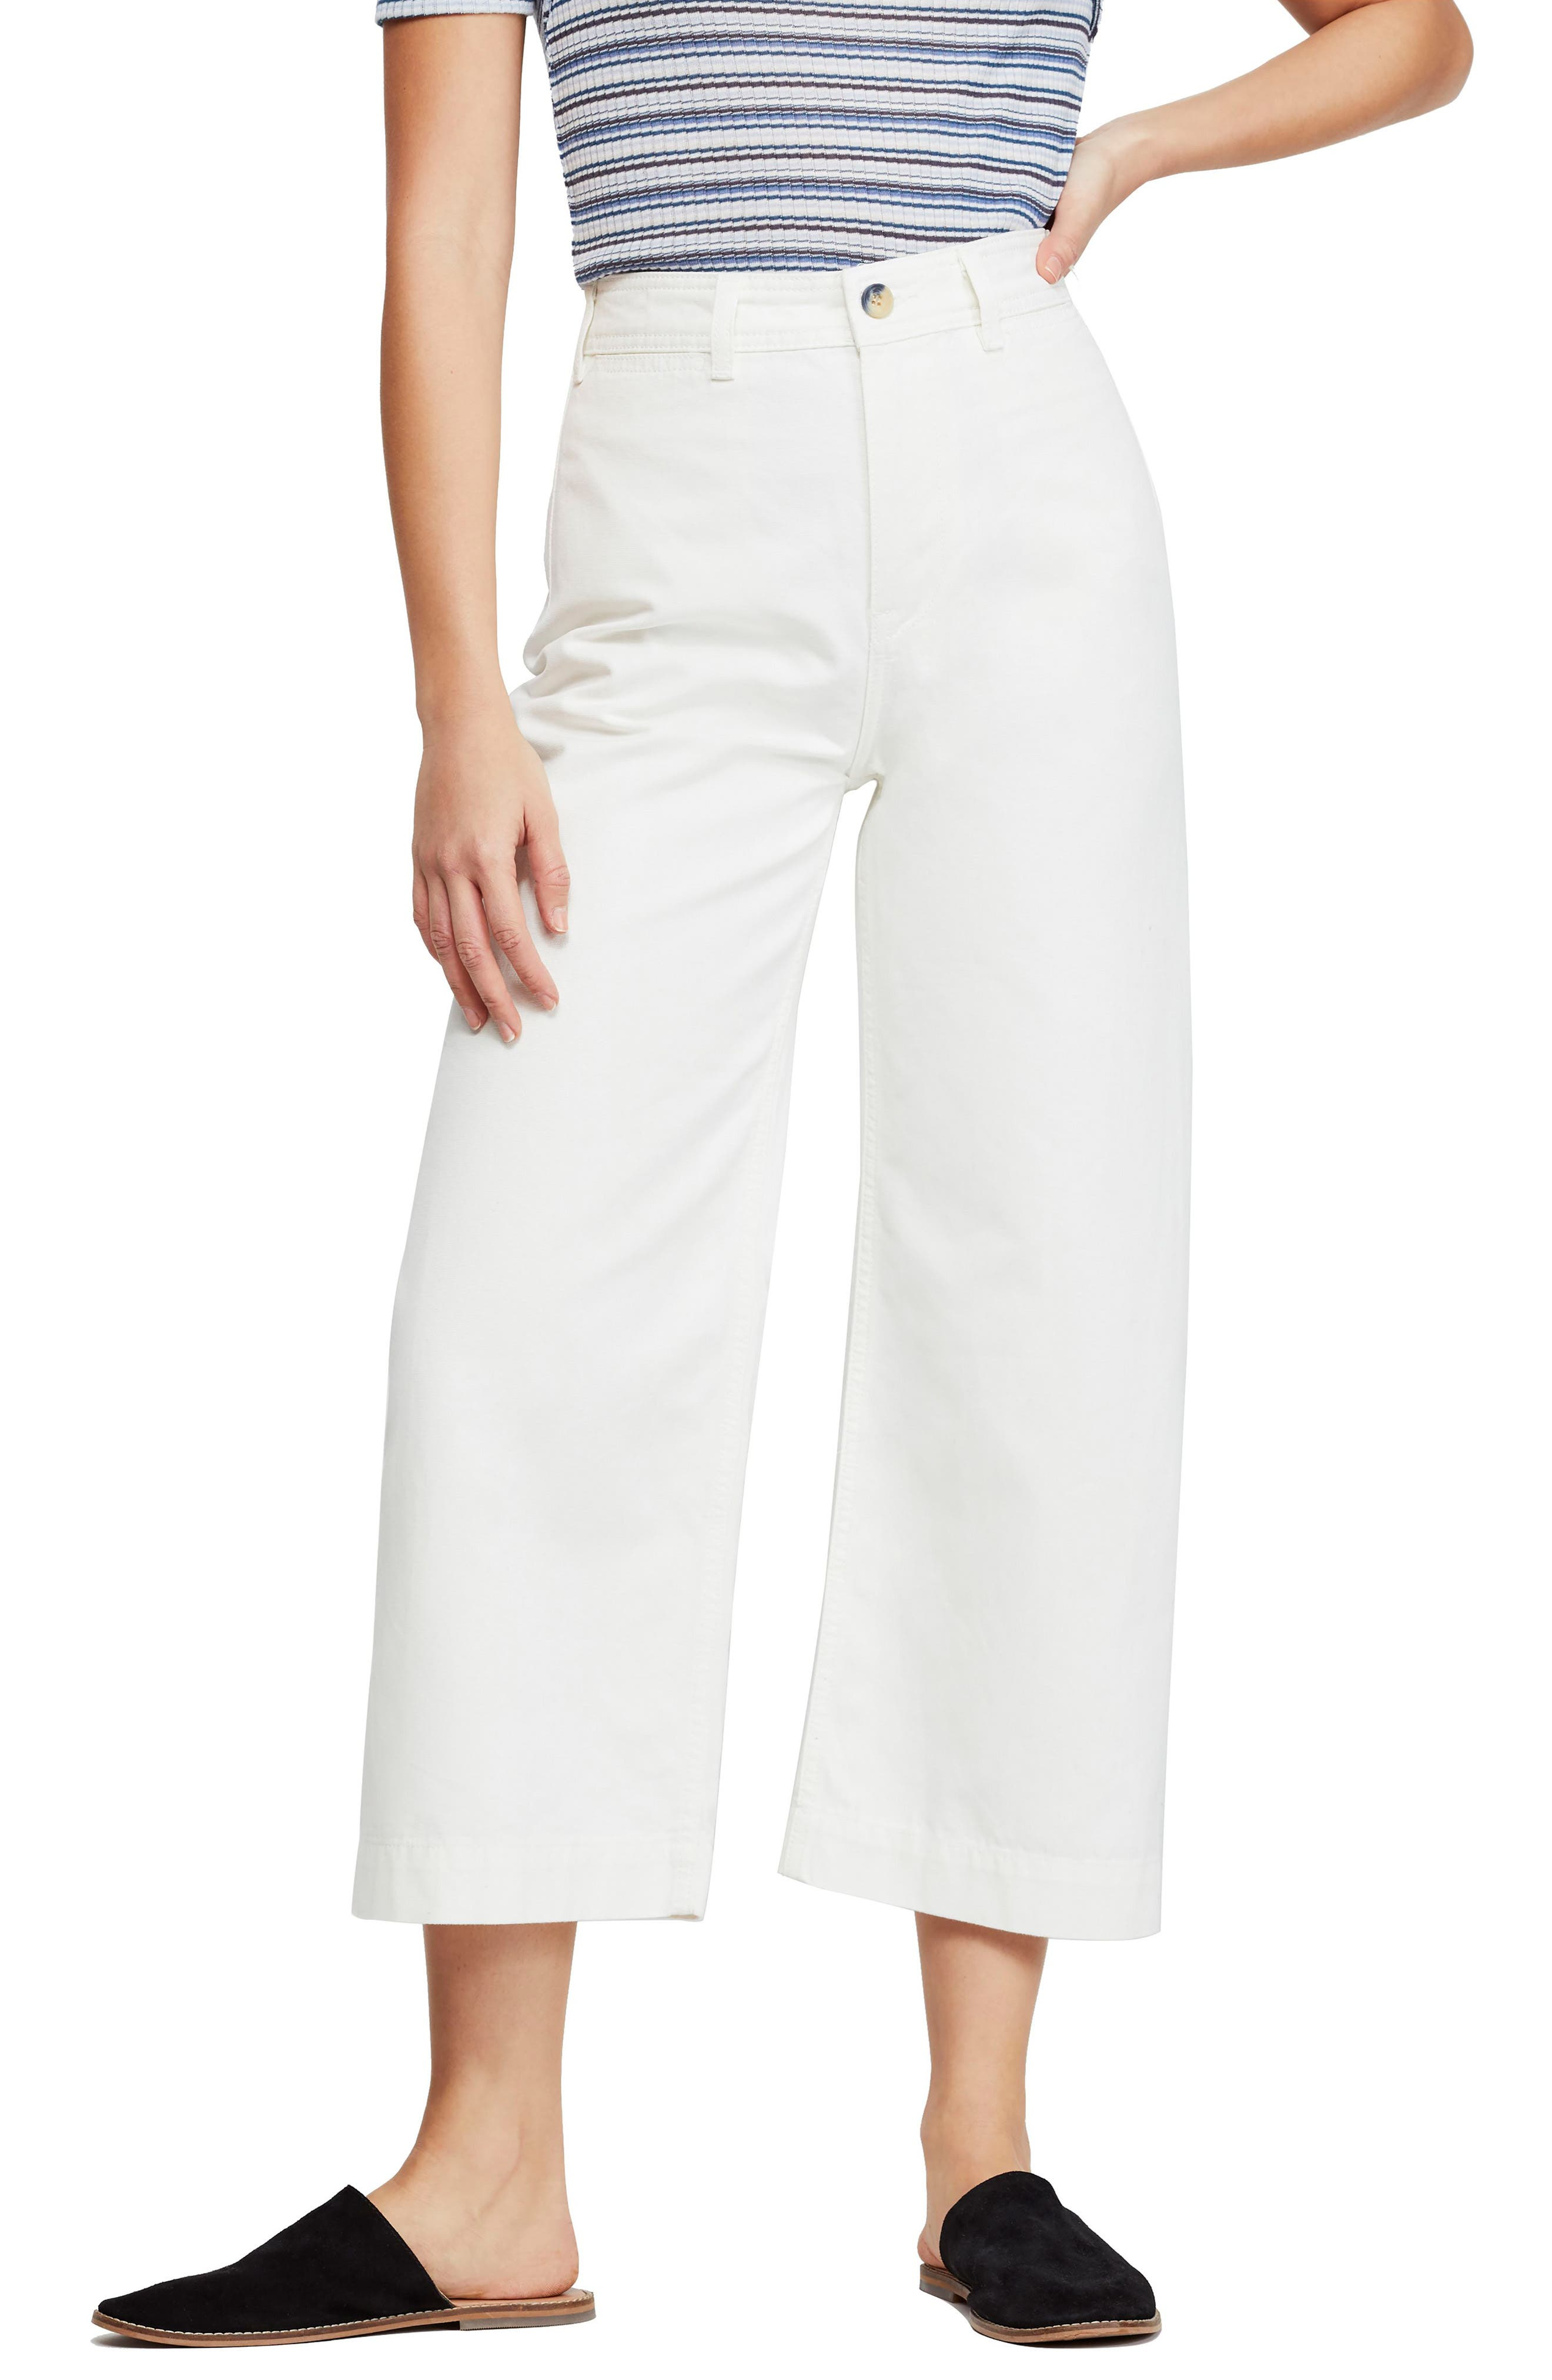 FREE PEOPLE, We the Free by Free People Patti Crop Cotton Pants, Main thumbnail 1, color, IVORY